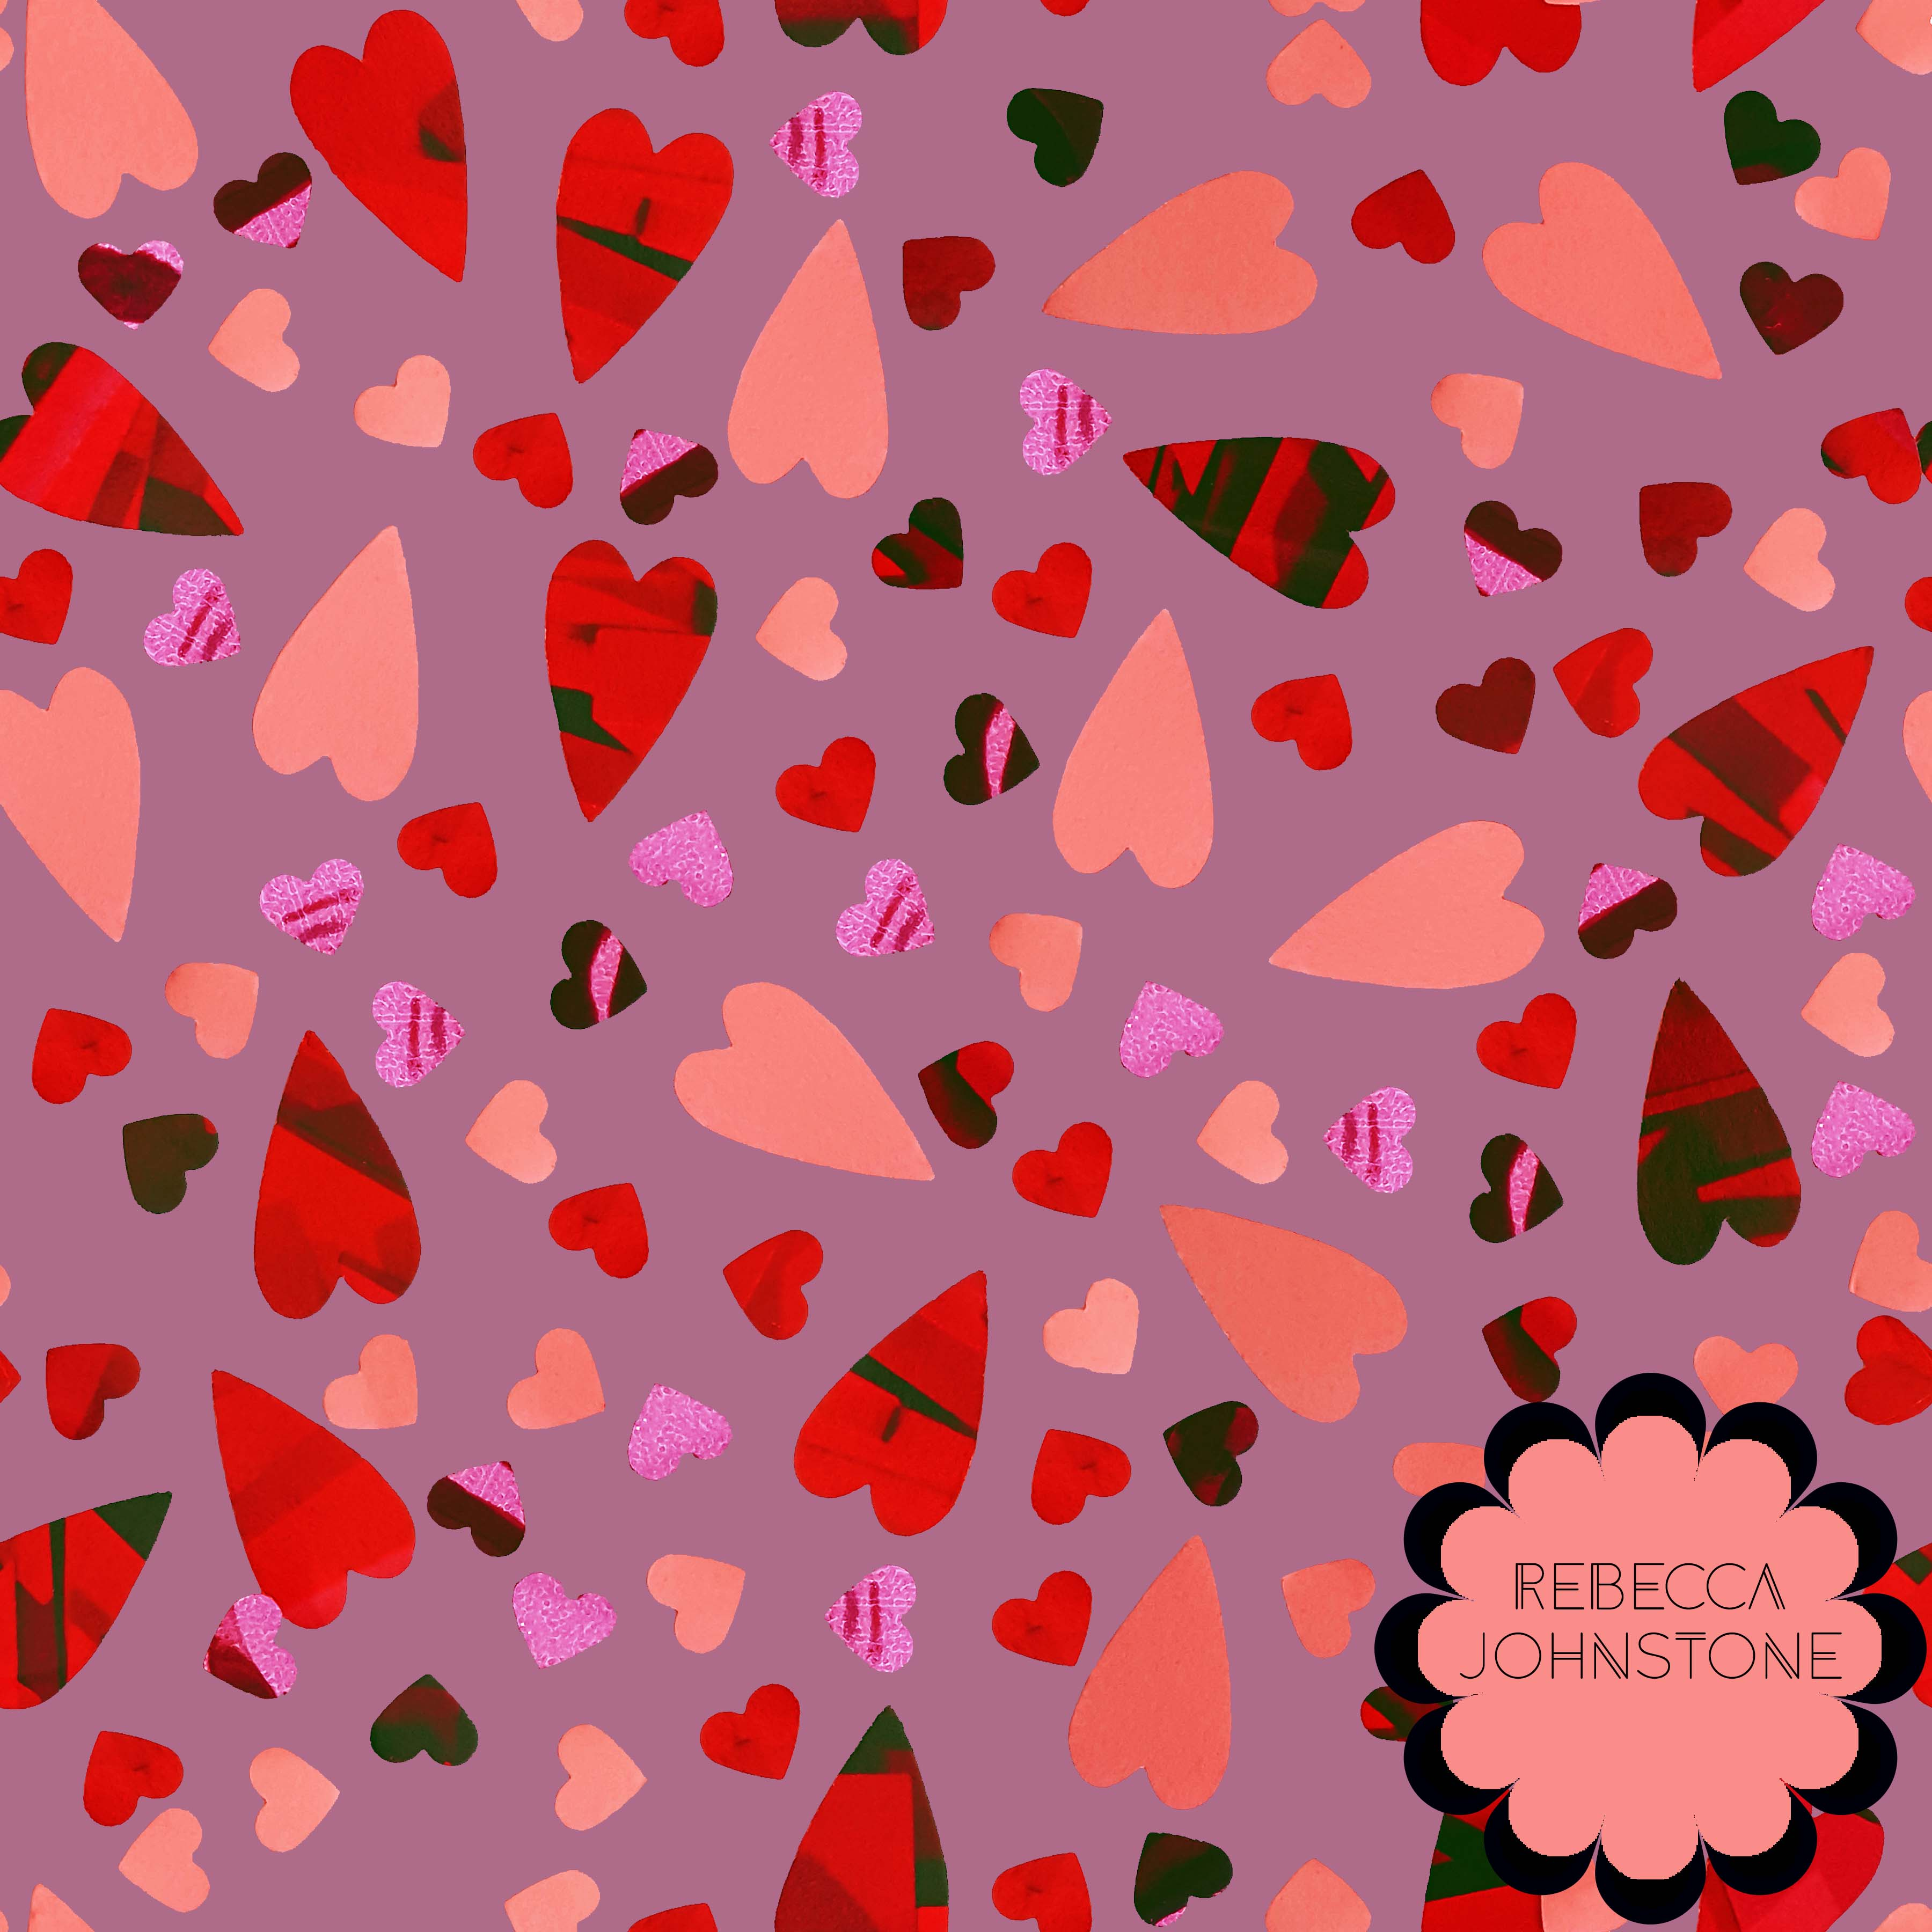 'Scattered Hearts' surface design pattern